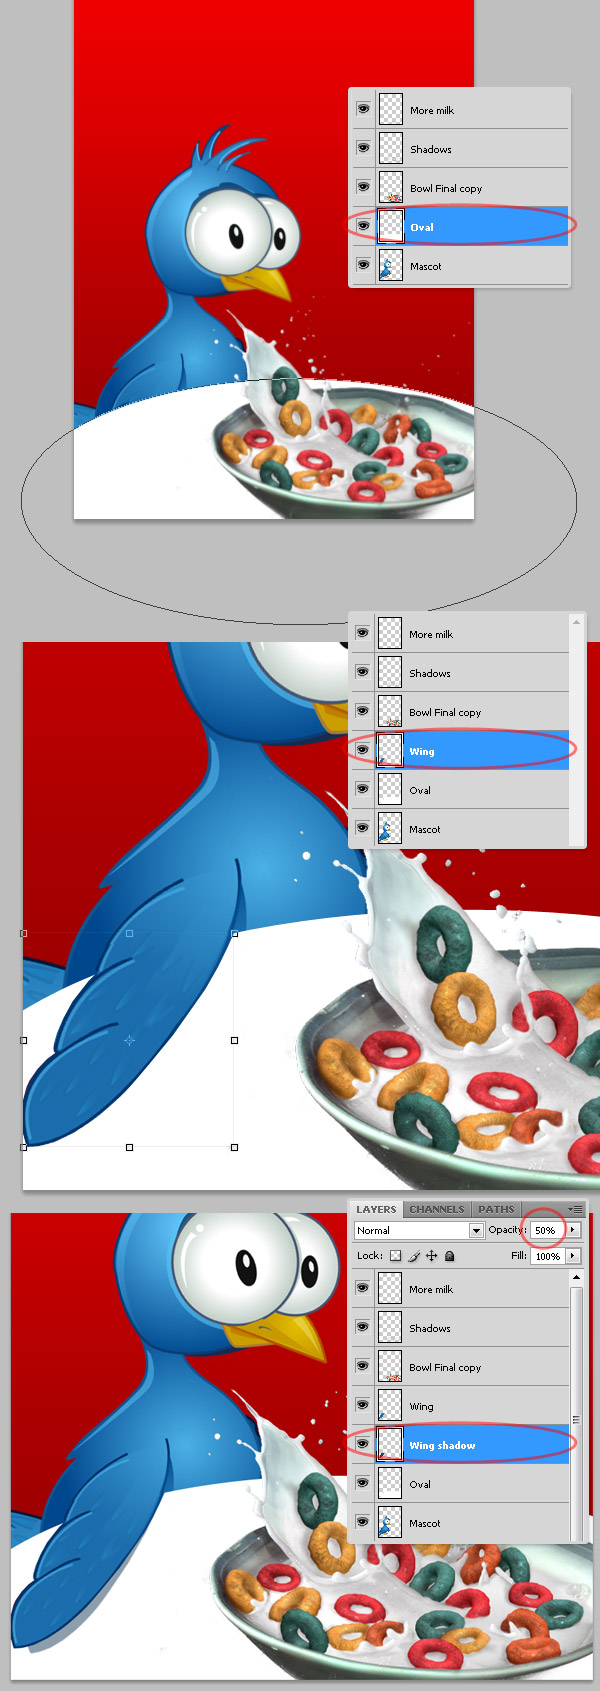 25 in Create a Cereal Box Cover from Scratch Using Photoshop's 3D Tools